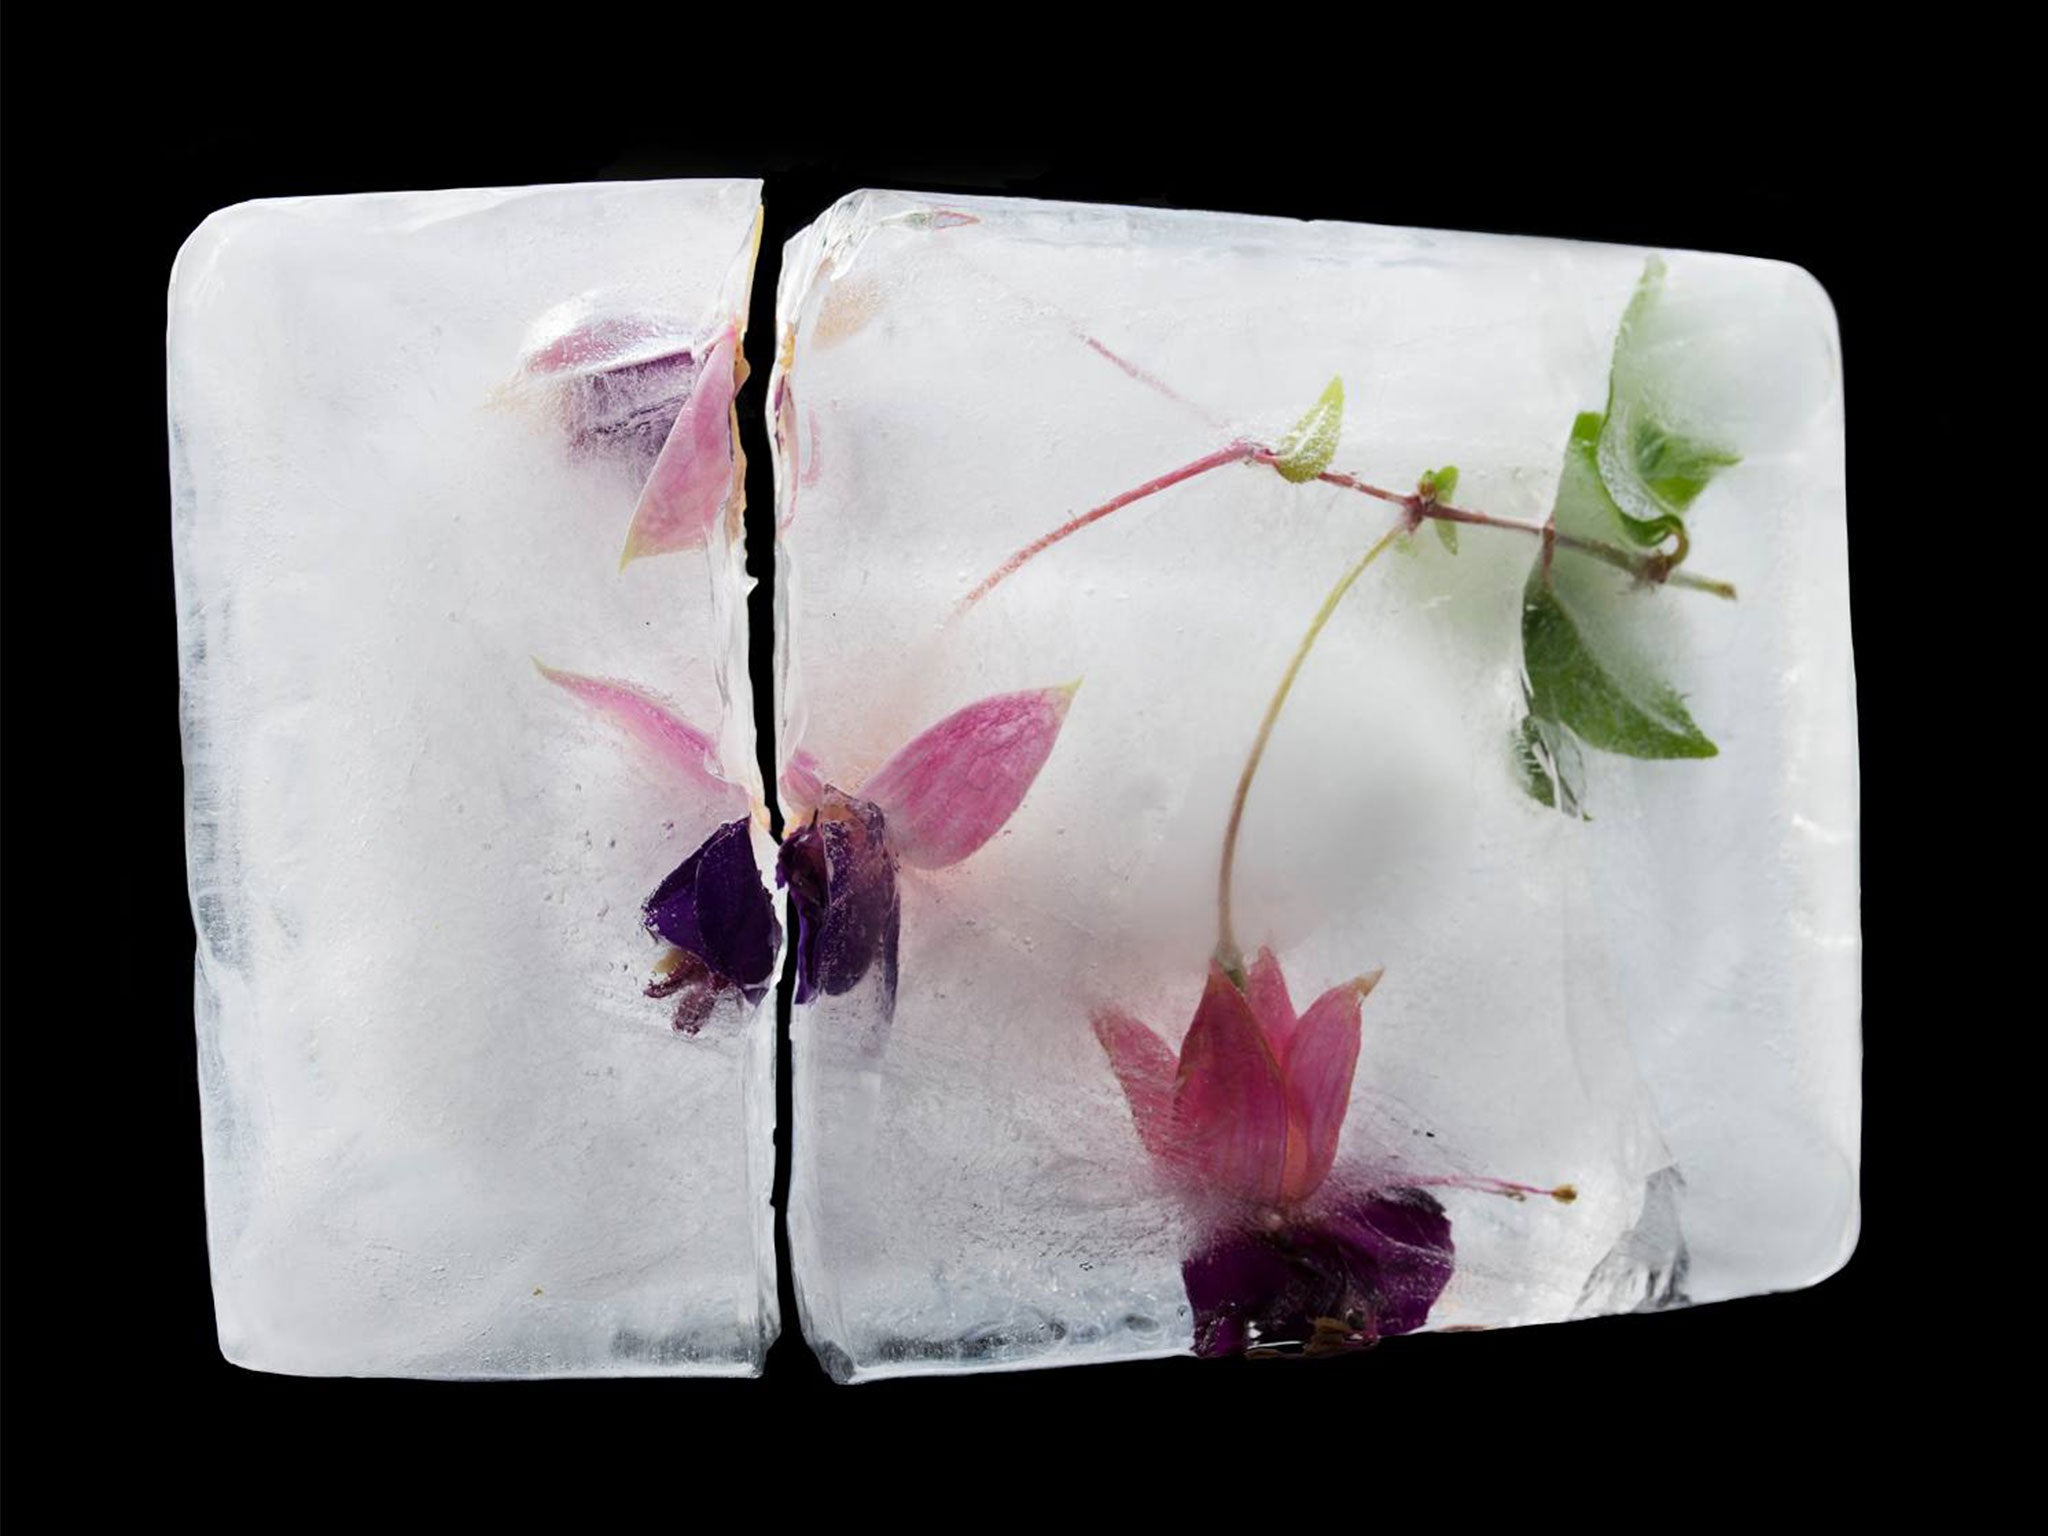 Frozen in time: Photographs of flowers in ice represent lost memories of those suffering from Alzheimer's